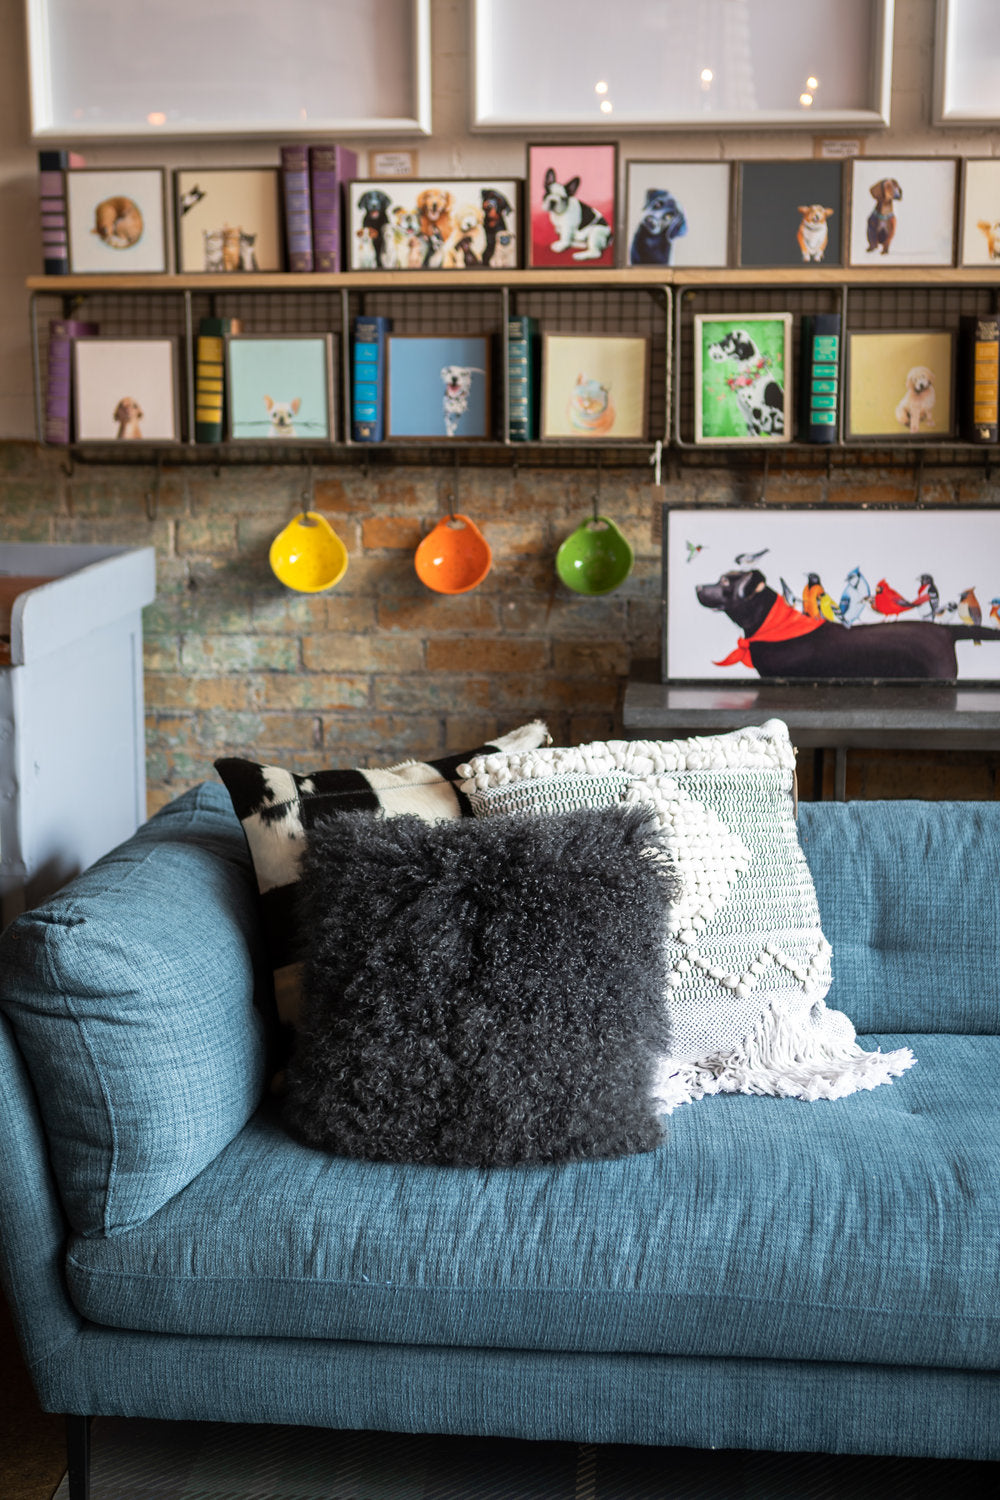 Blue couch with dark and light fluffy pillows